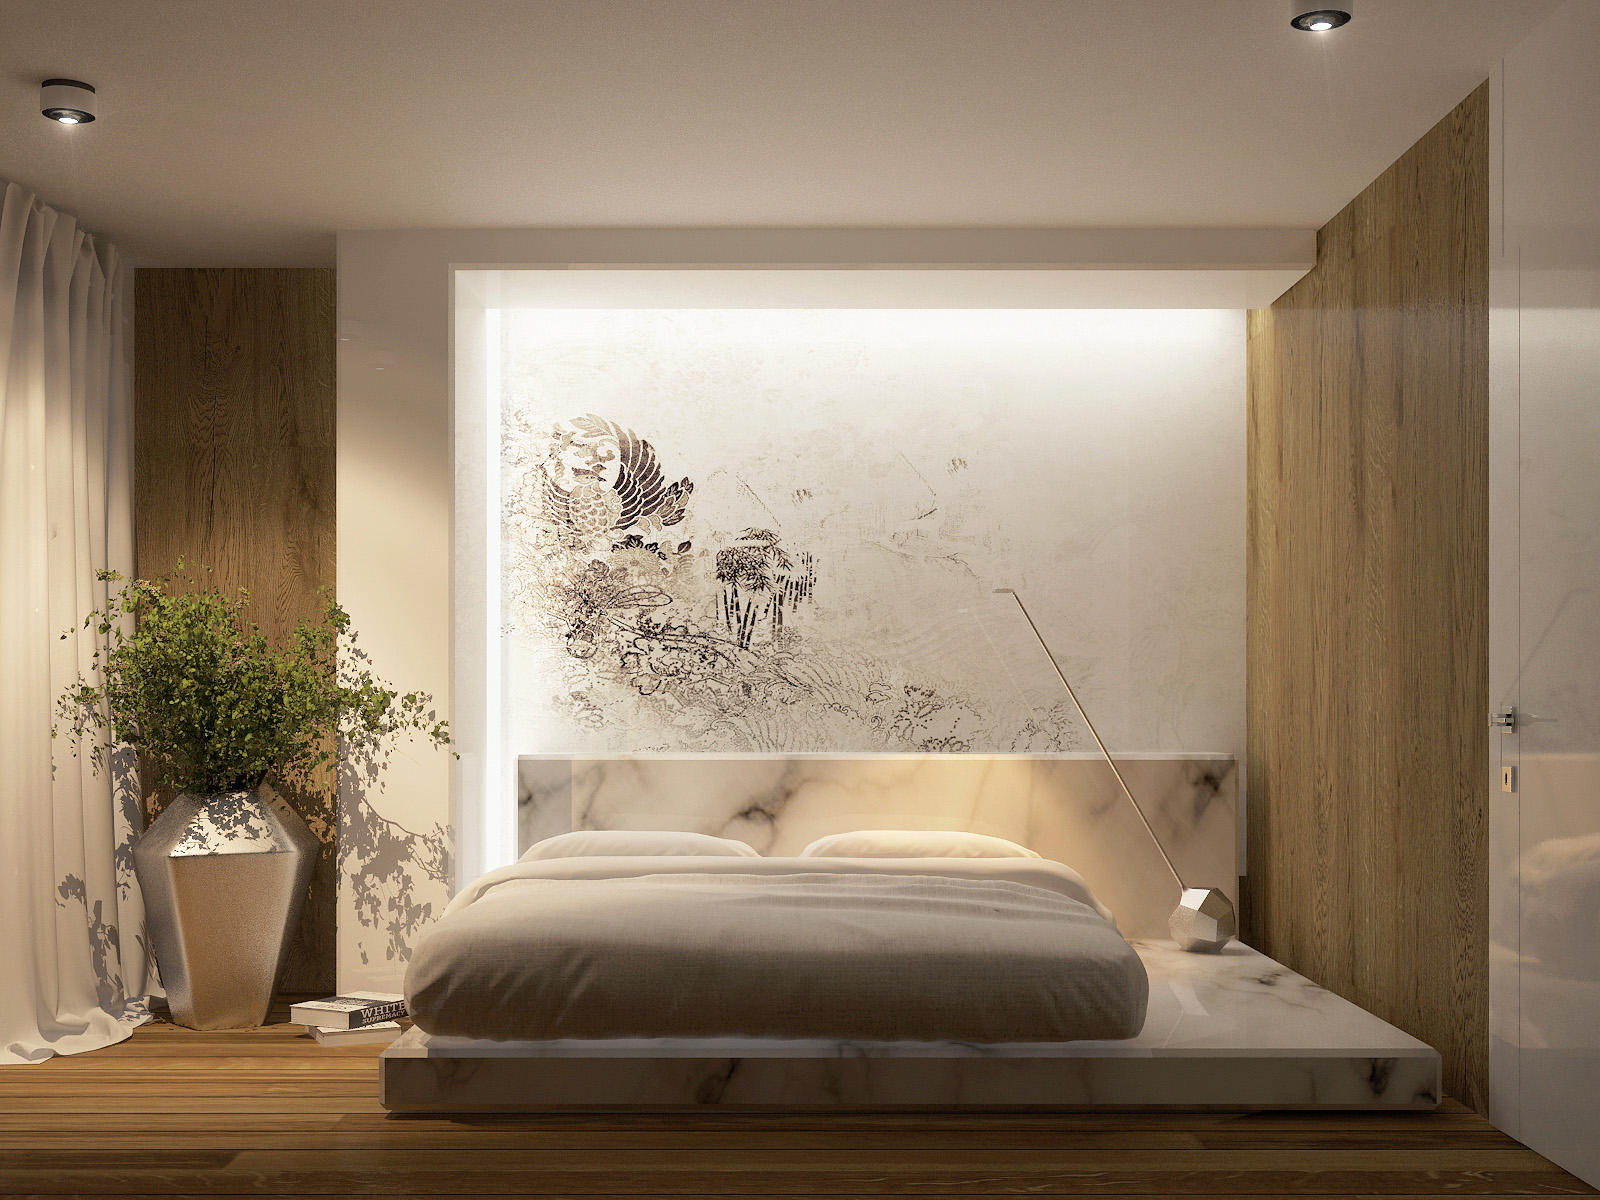 Simple Interior Design Ideas simple interior design ideas raw wood pattern natural design positive impression full size Simple Modern Bedroom Simple Modern Bedroom Interior Design Ideas